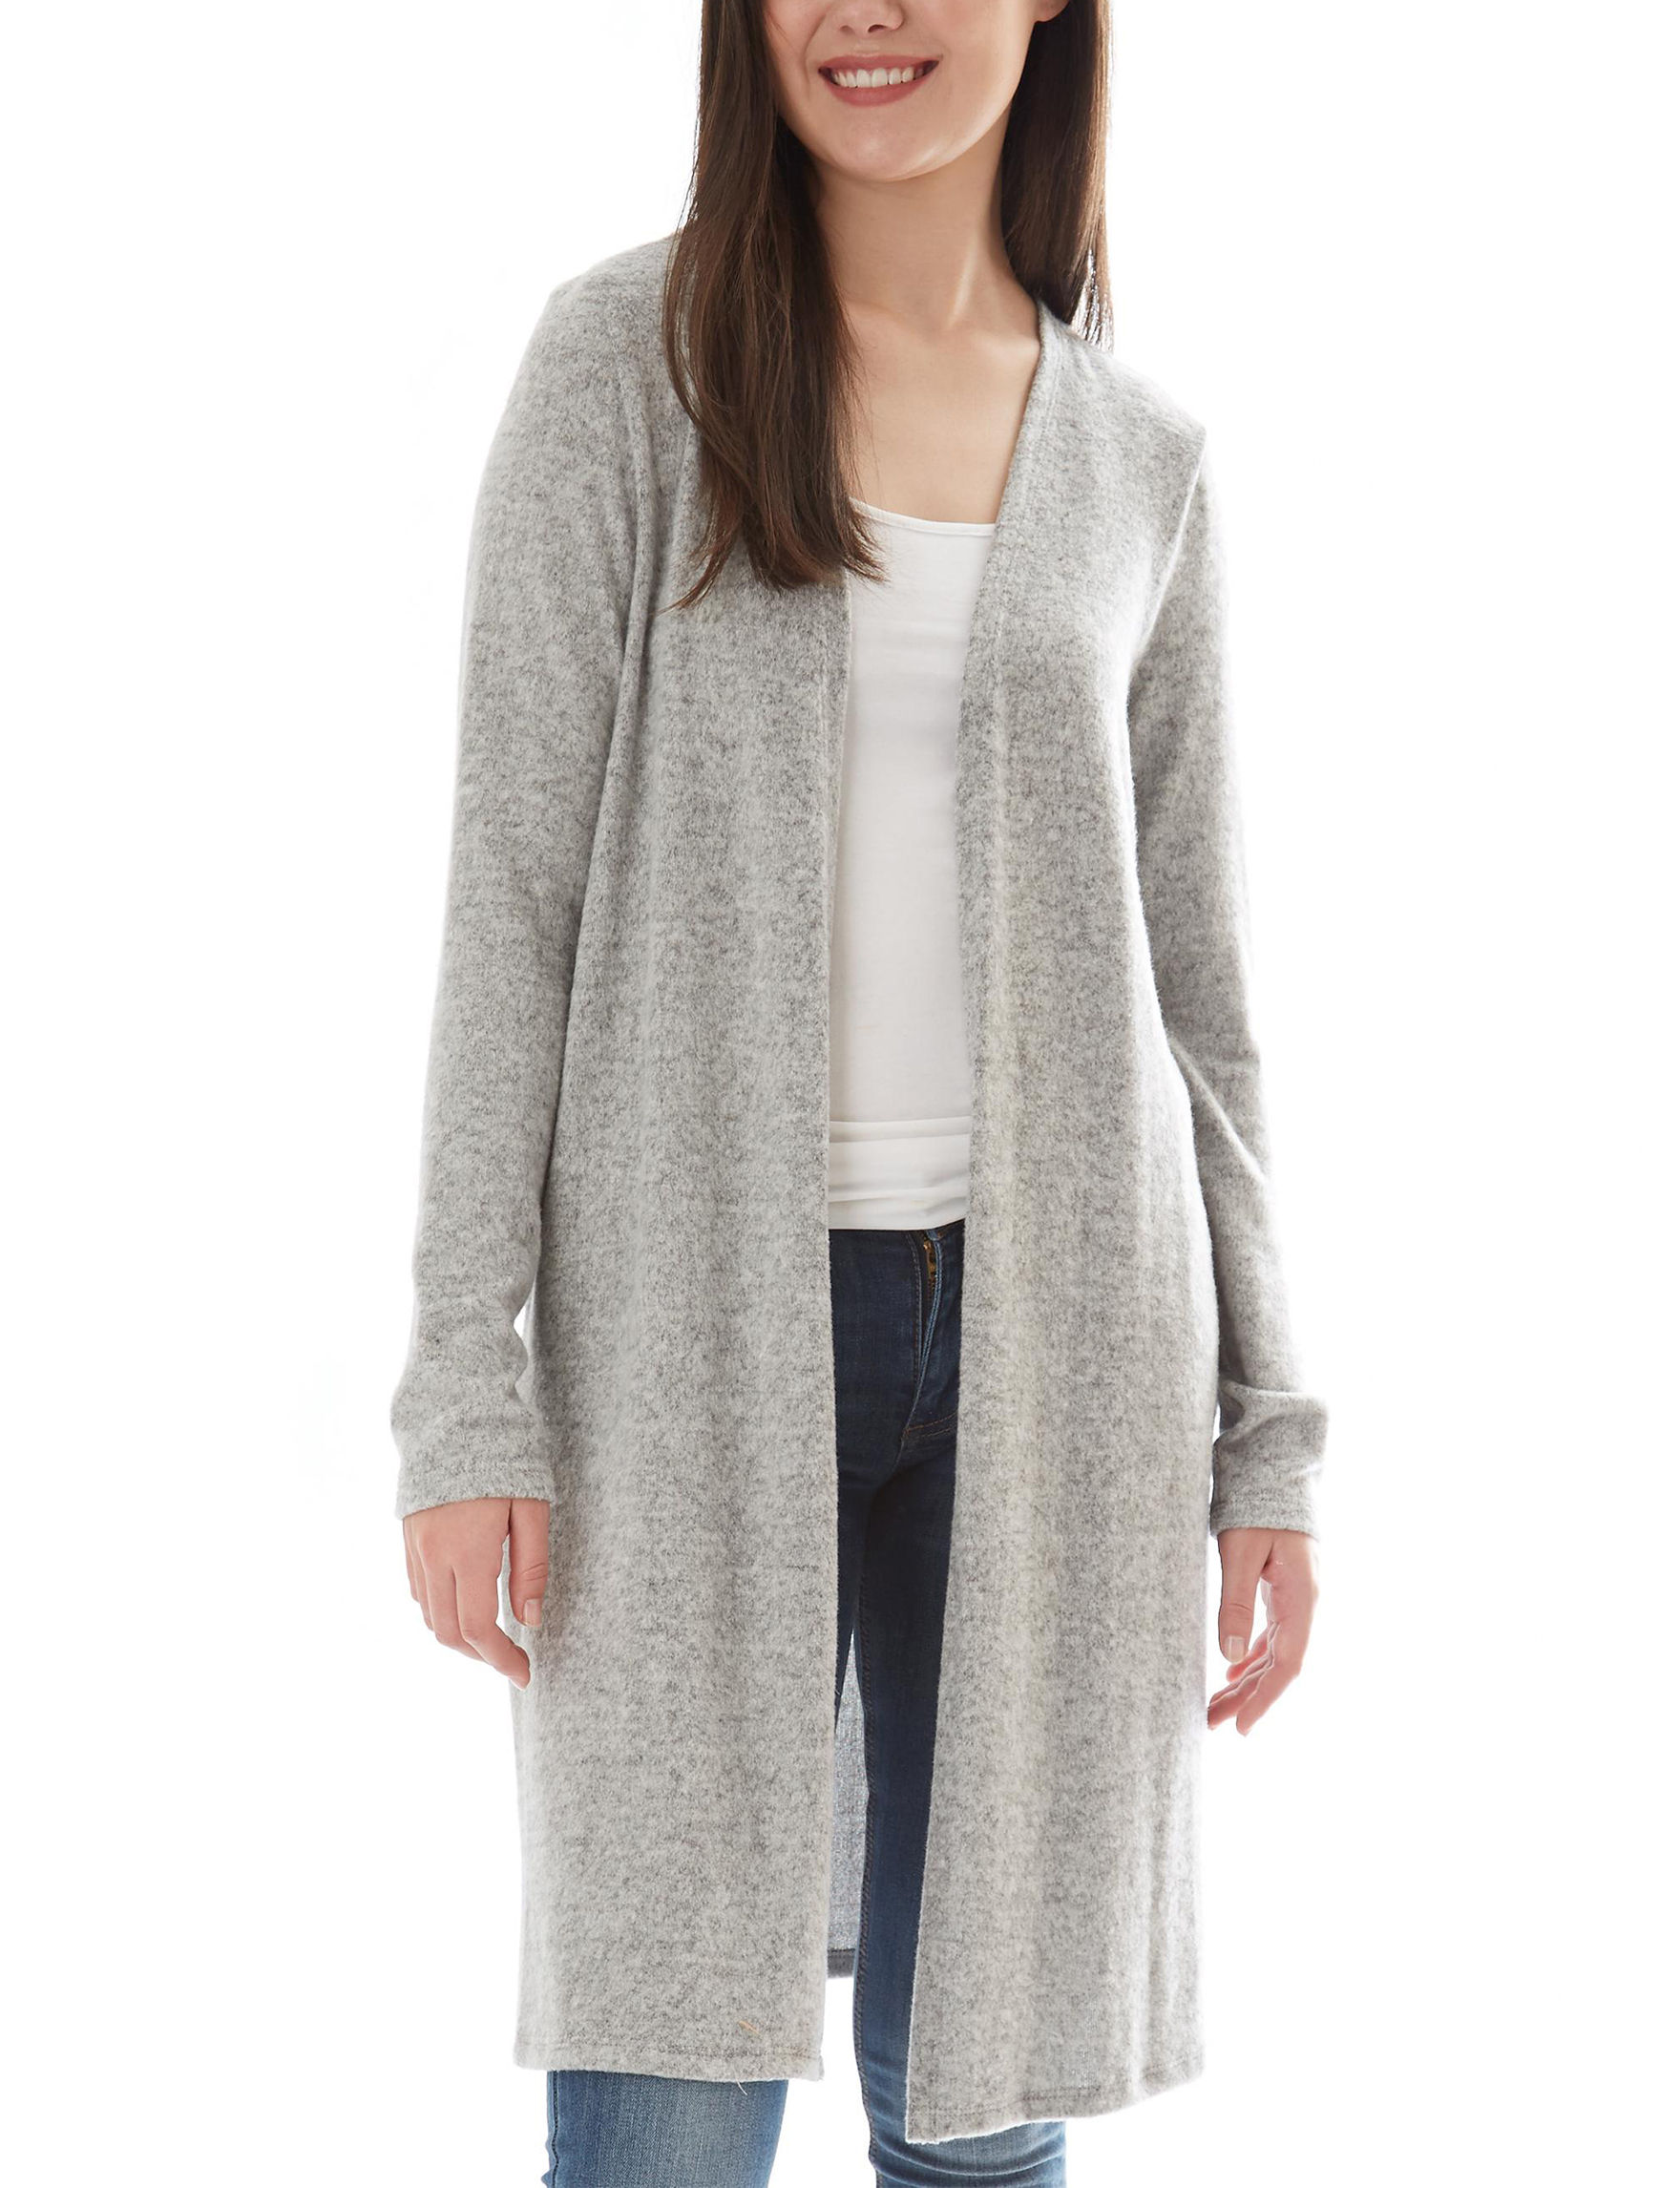 A. Byer Heather Grey Cardigans Everyday & Casual